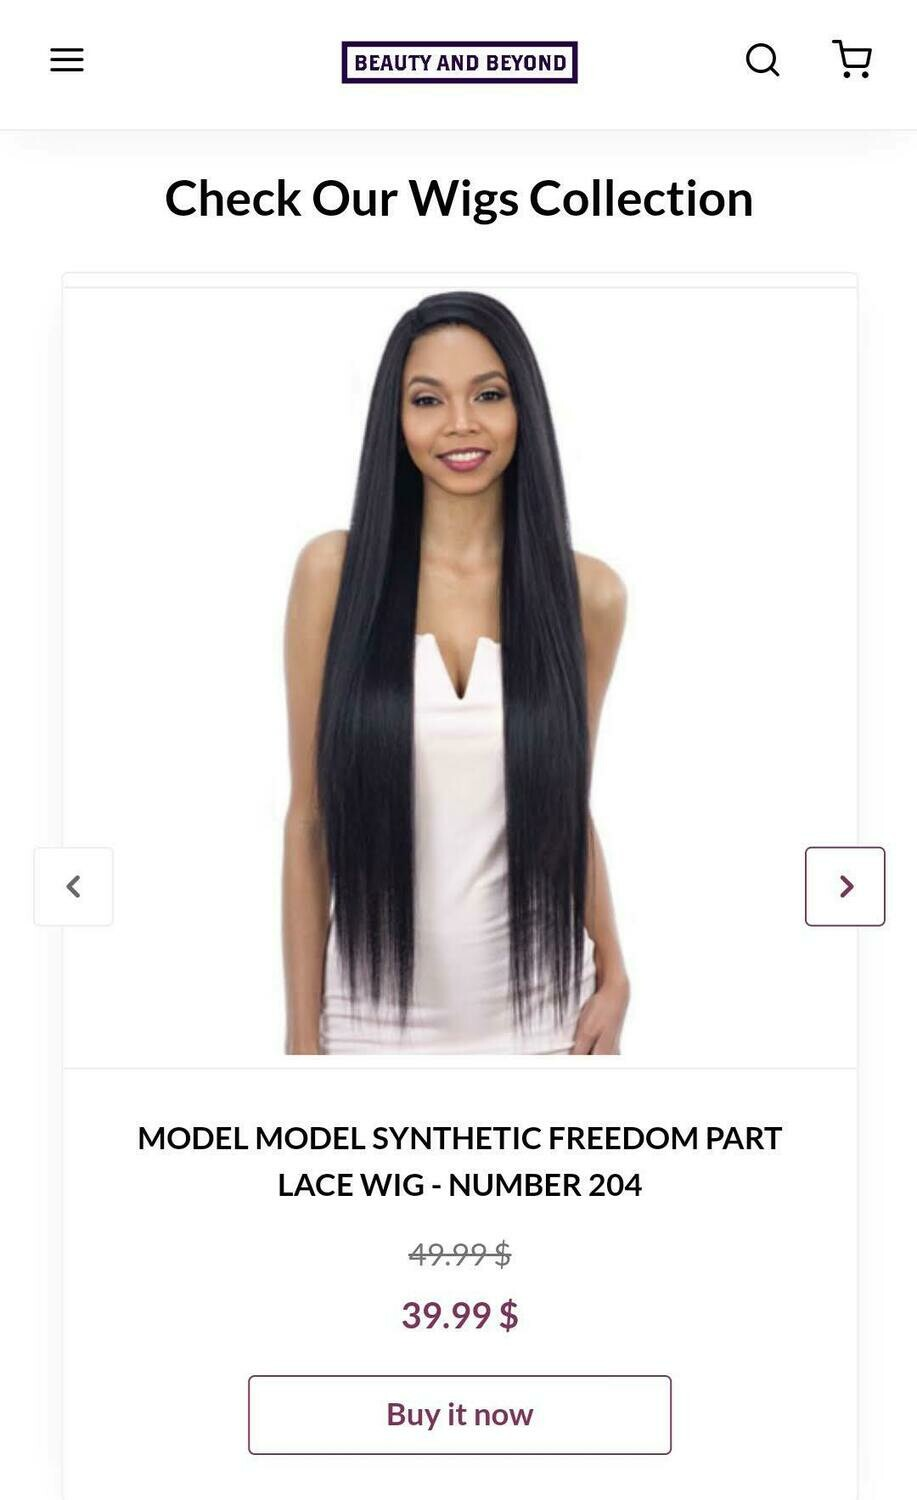 Model Model Synthetic Freedom Part Lace Wig- Number 204